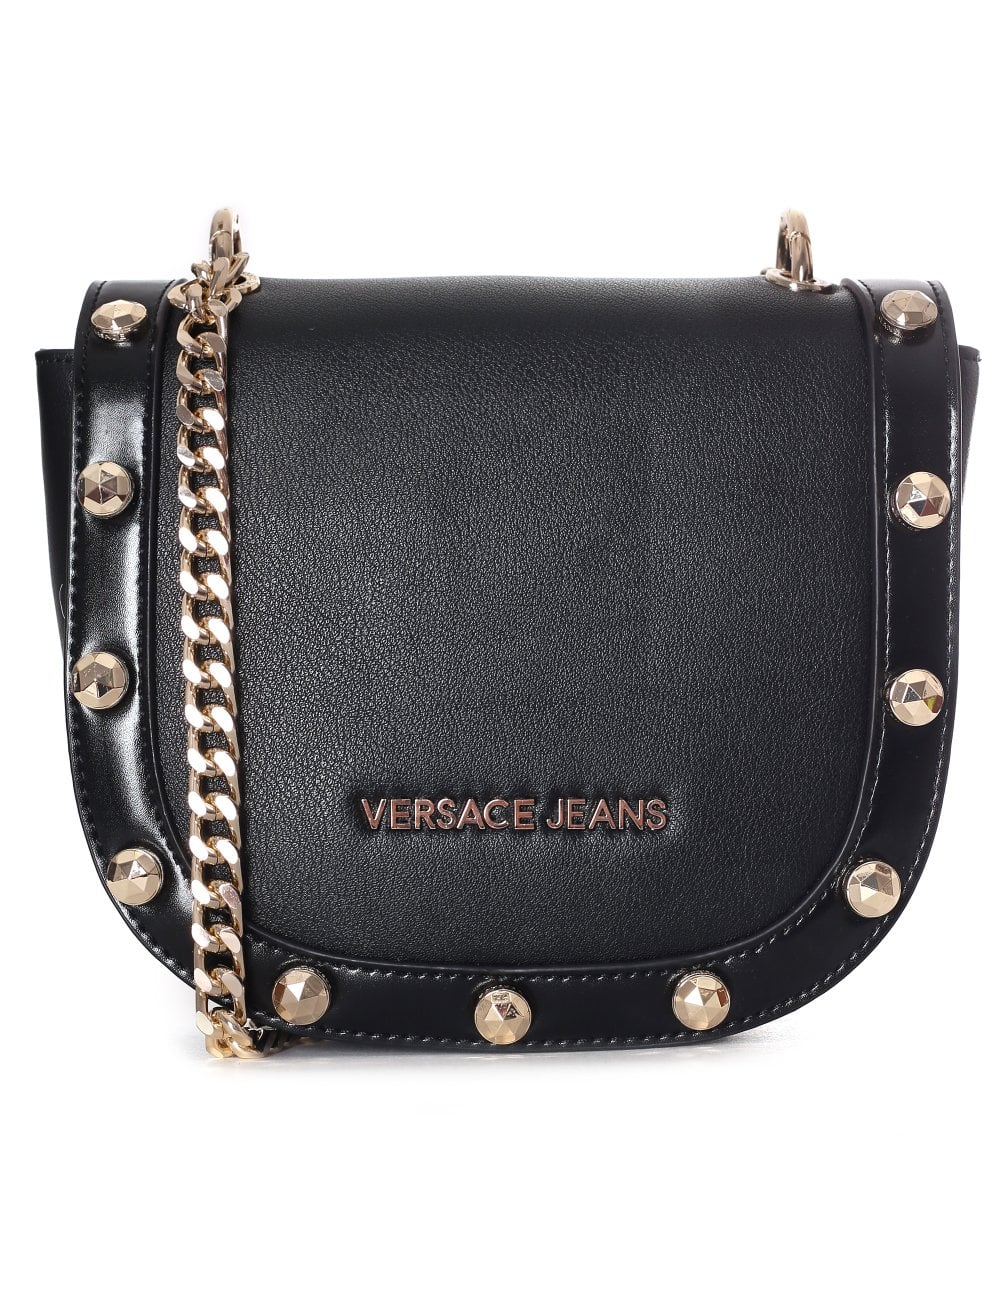 3f29249a673 Versace Jeans Women s Large Stud Chain Cross Body Bag